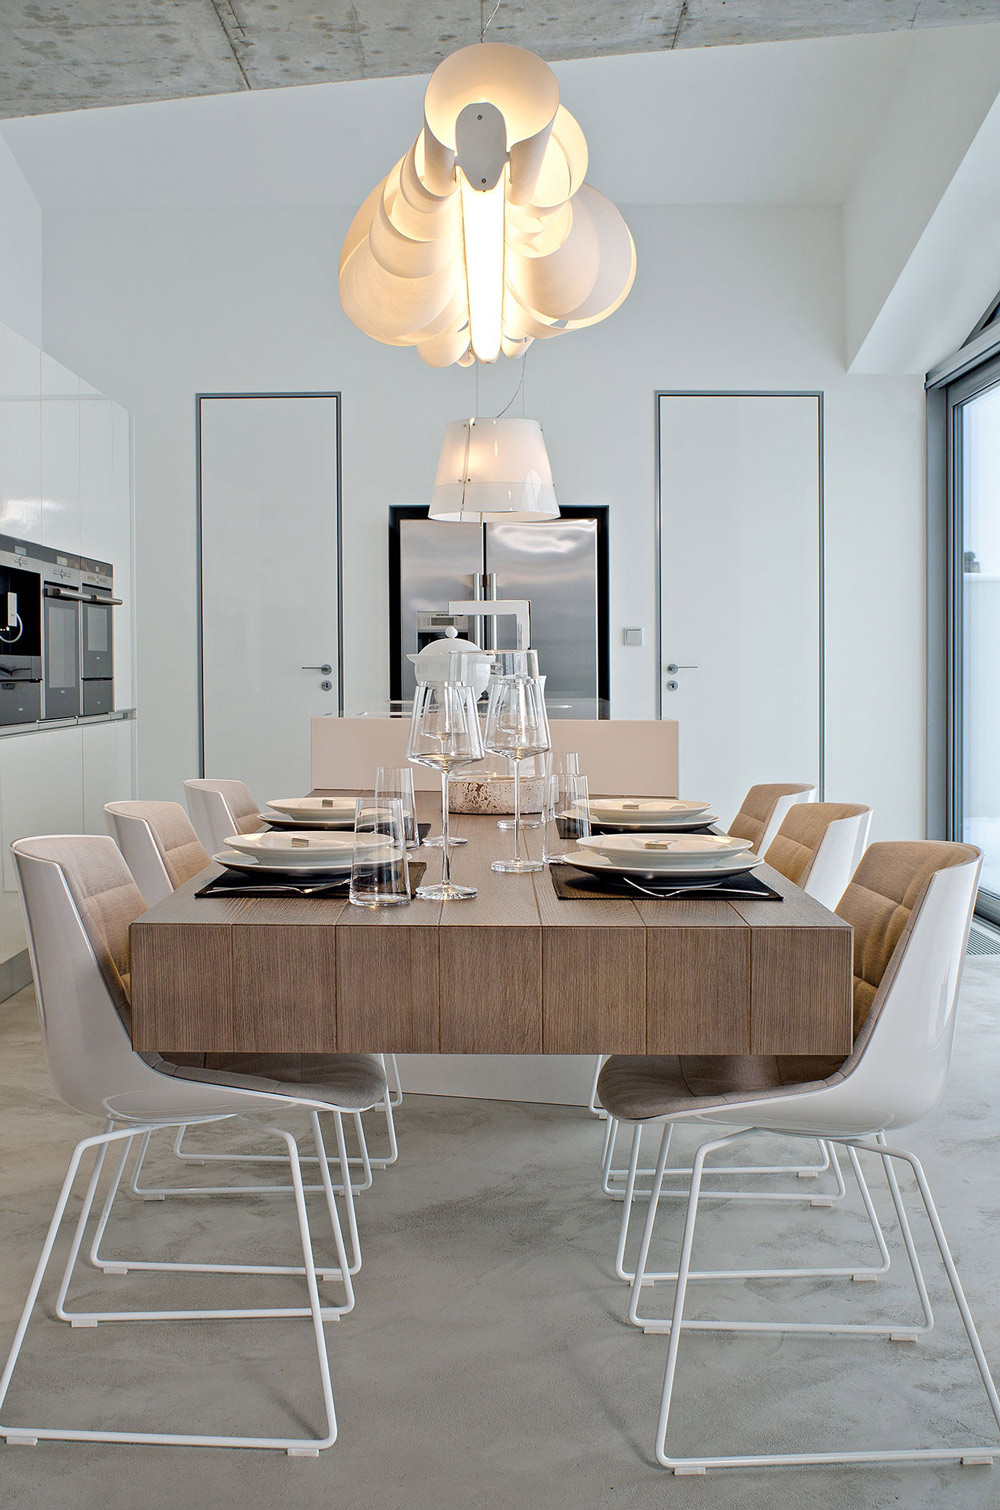 Lighting, Dining Table, Concrete Interior Design in Osice, Czech Republic